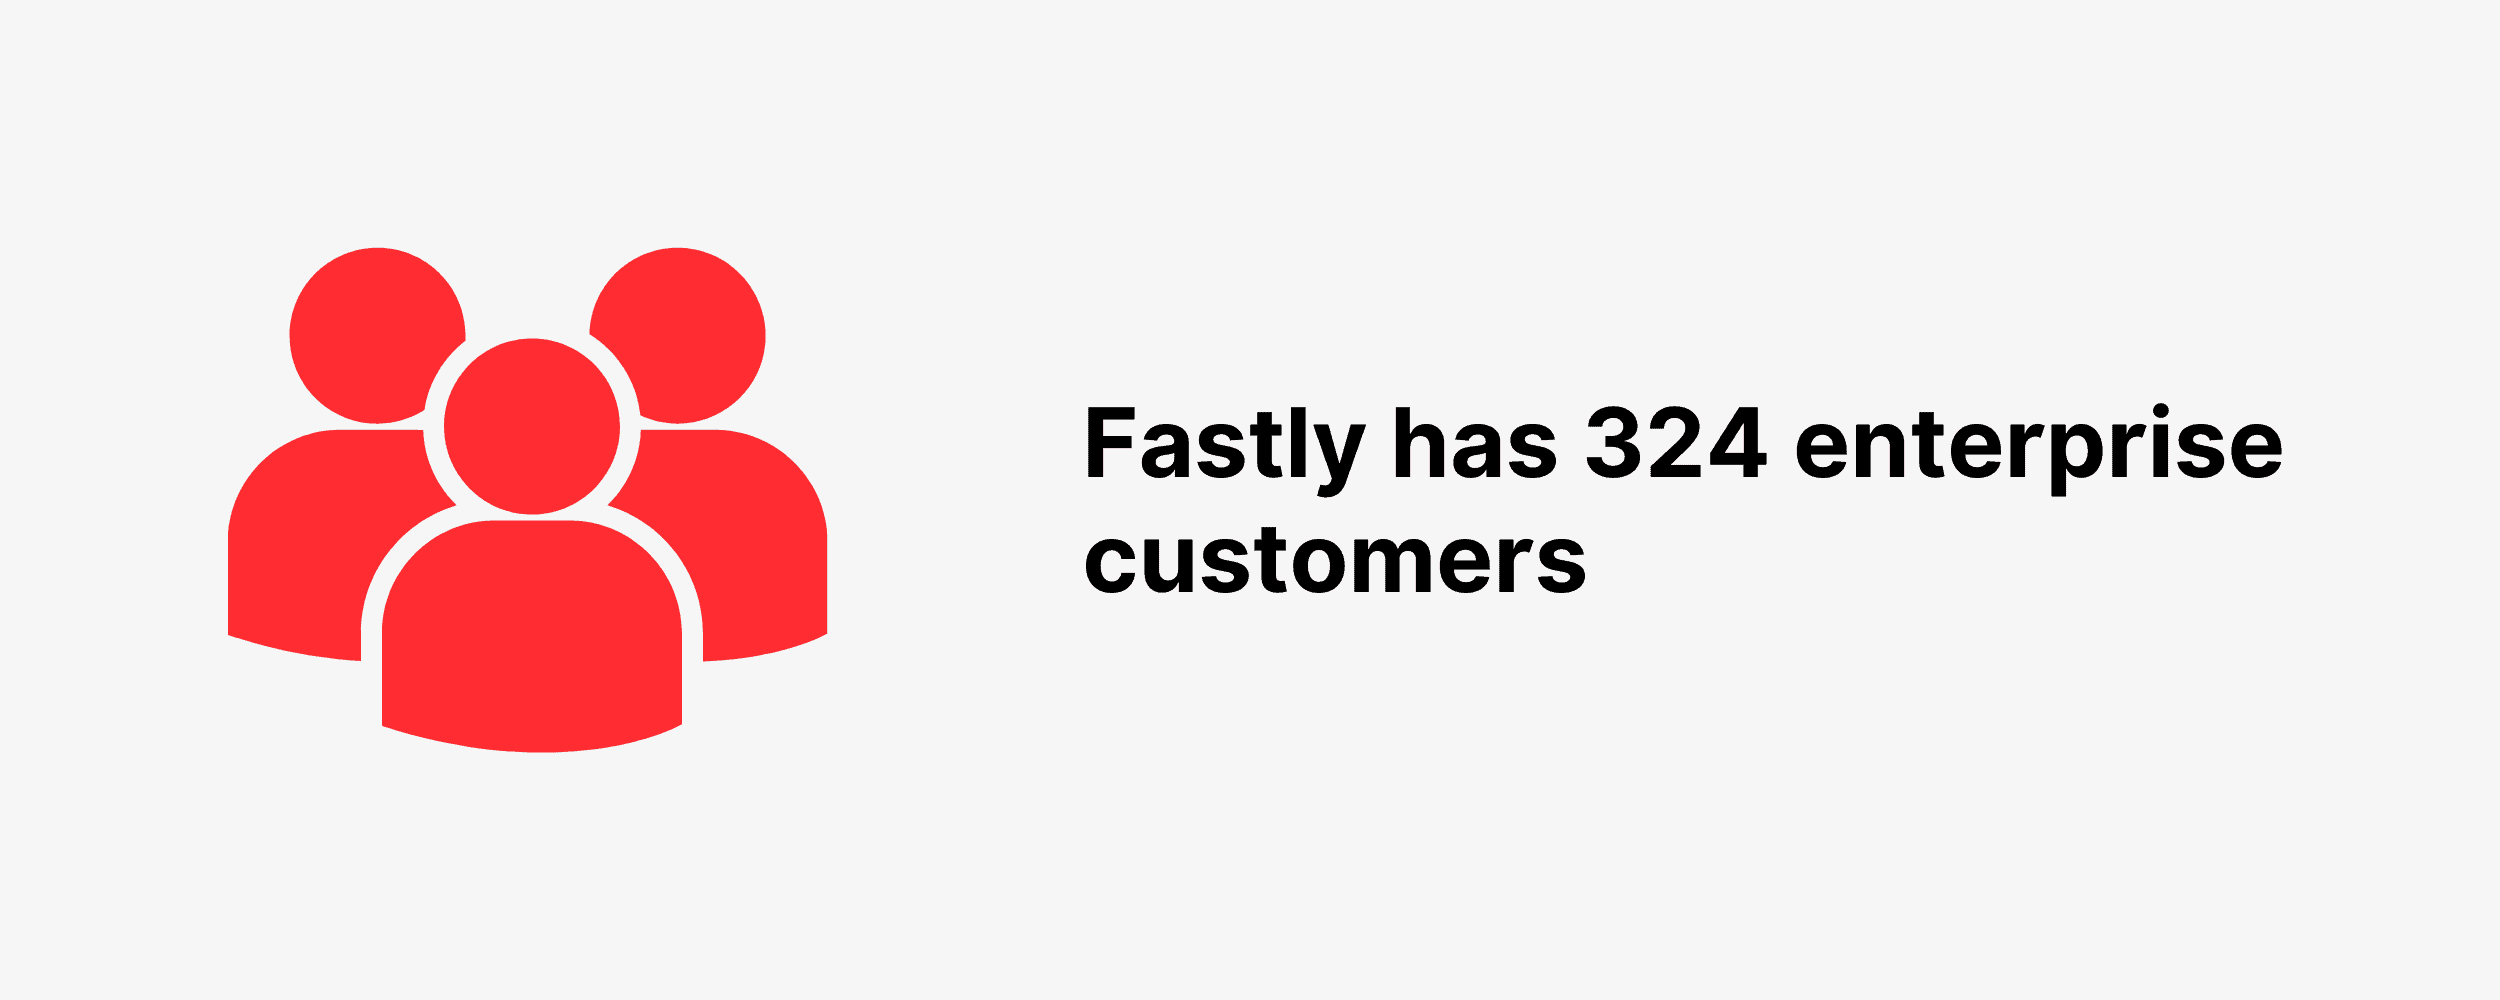 Fastly has 324 enterprise customers